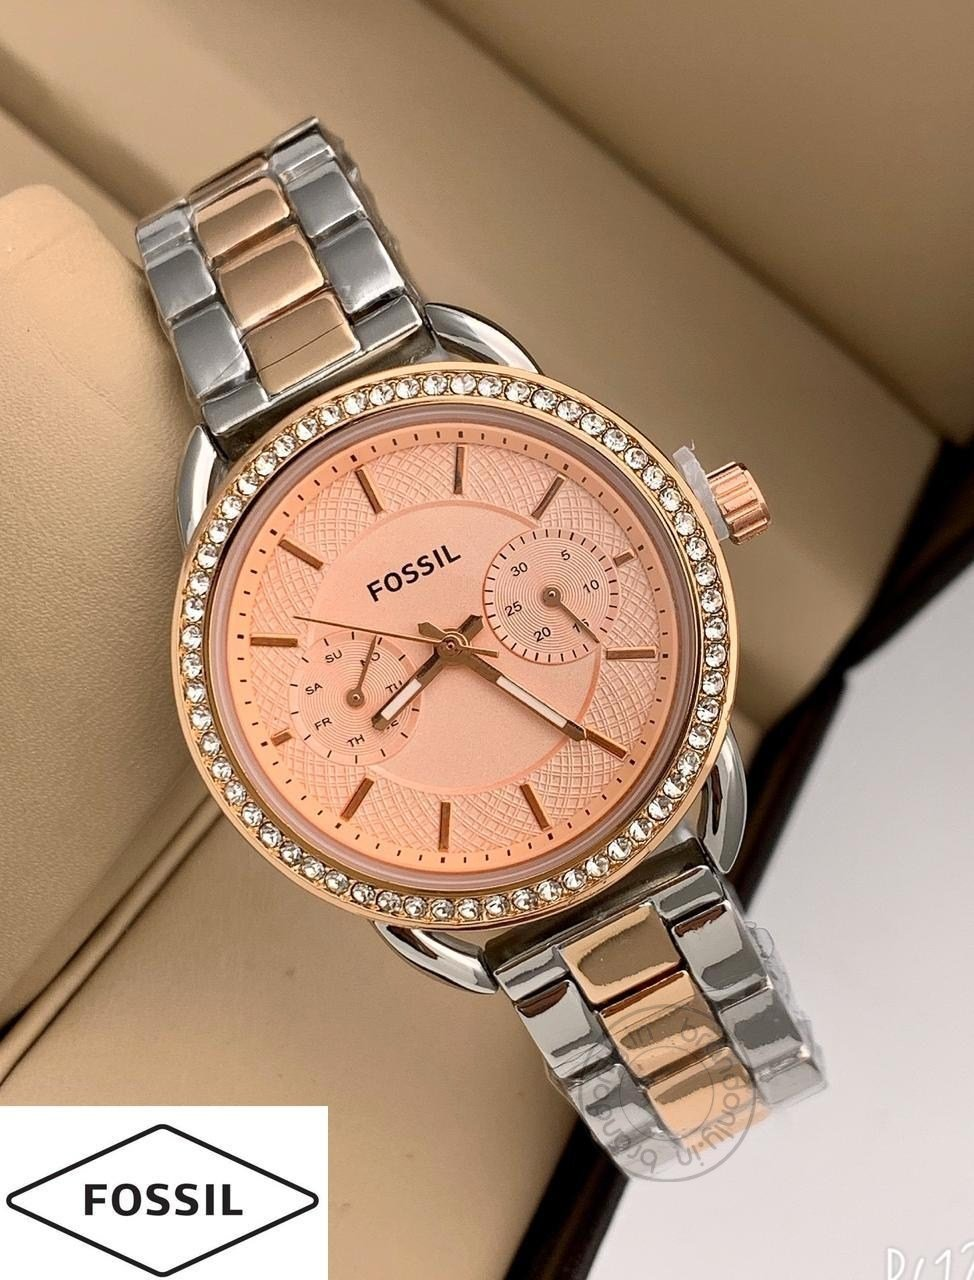 Fossil Rose Gold Silver Women's Watch For Girl Or Woman Es-532 Two Tone  Peach Dial- Best Gift For Women